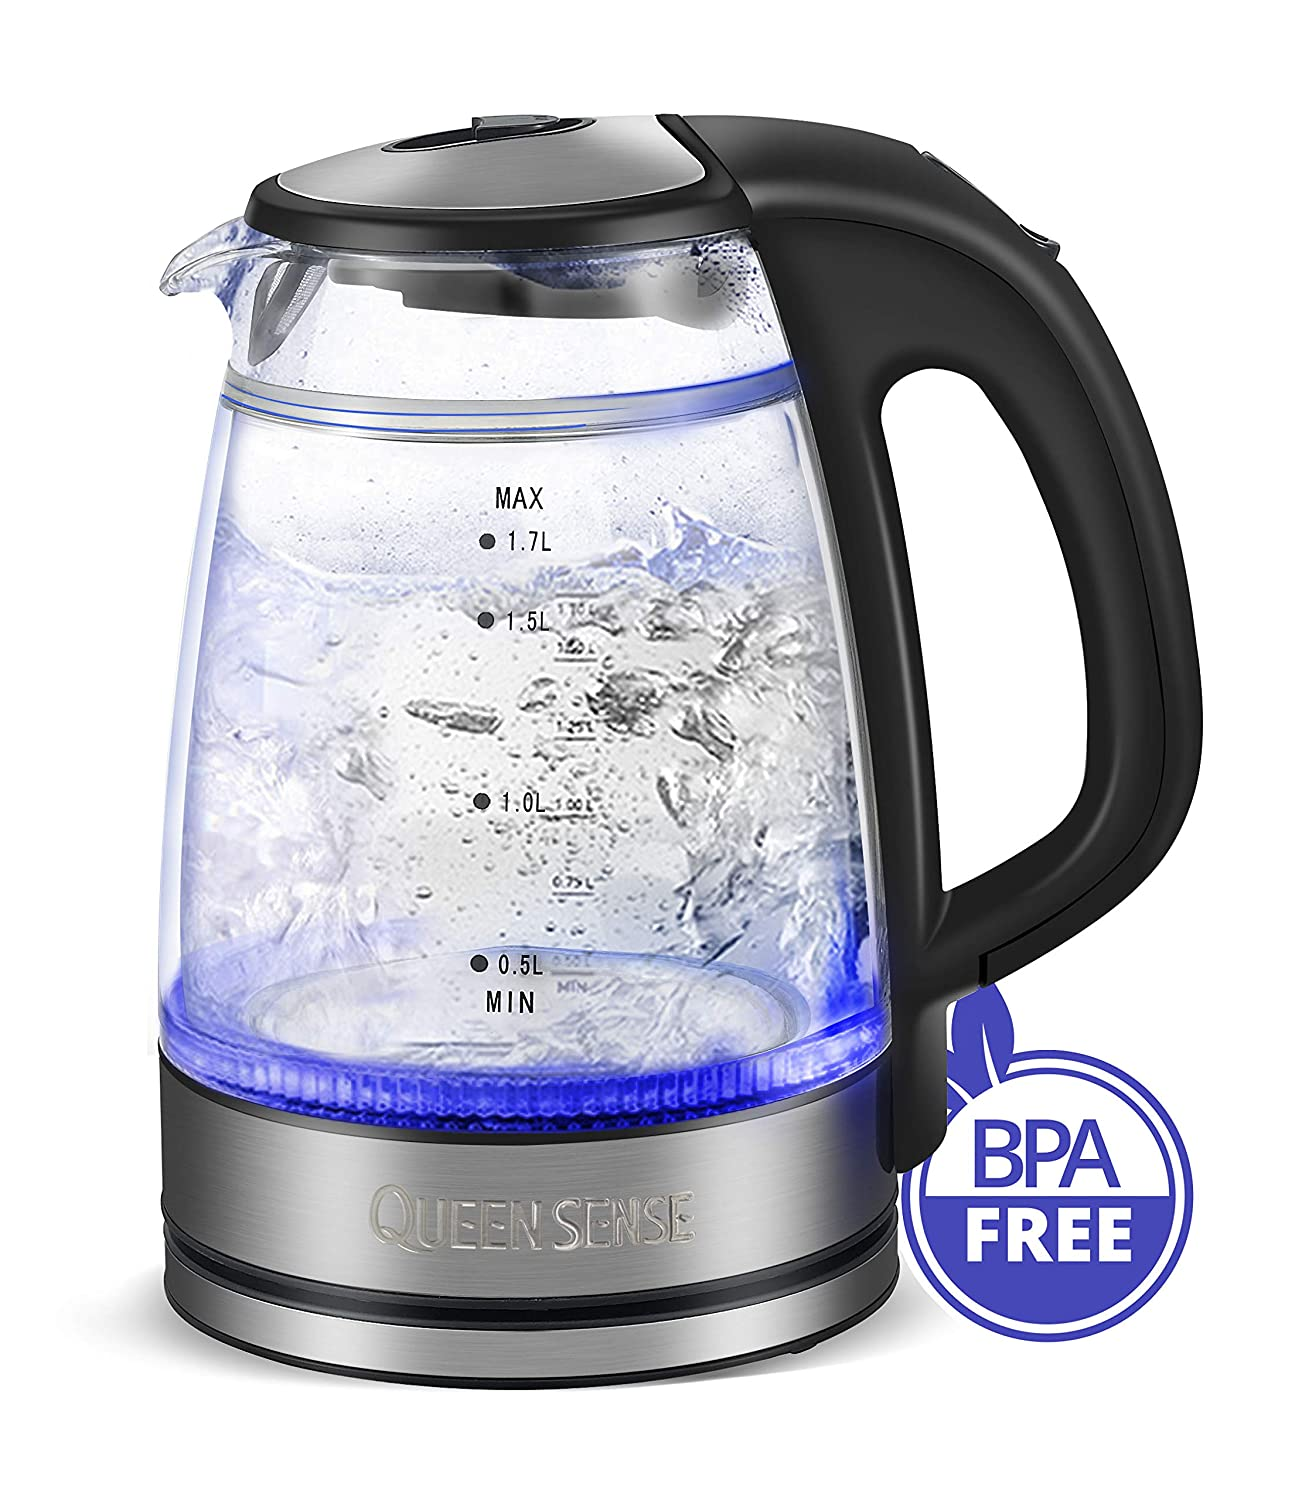 Electric Water Kettle Glass Double Wall Cordless with Blue LED Light, 1.7L 1500W Tea Kettle, Fast Water Boiler, Automatic Shutoff, Boil Dry Protection